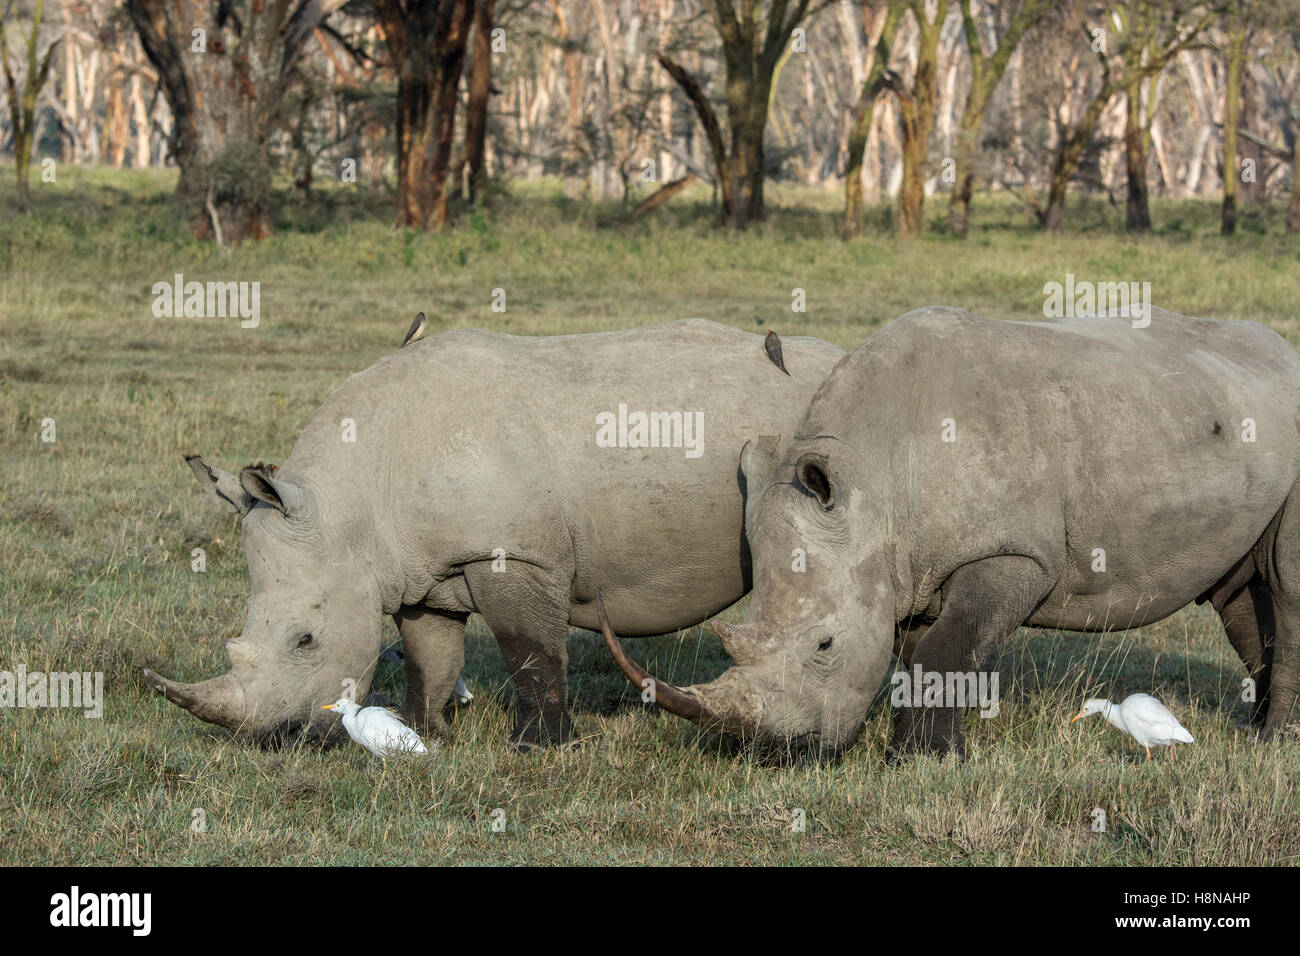 Two White Rhinoceroses, Ceratotherium simum, grazing with Cattle Egrets and Oxpeckers in Nakuru National Park, Kenya, - Stock Photo